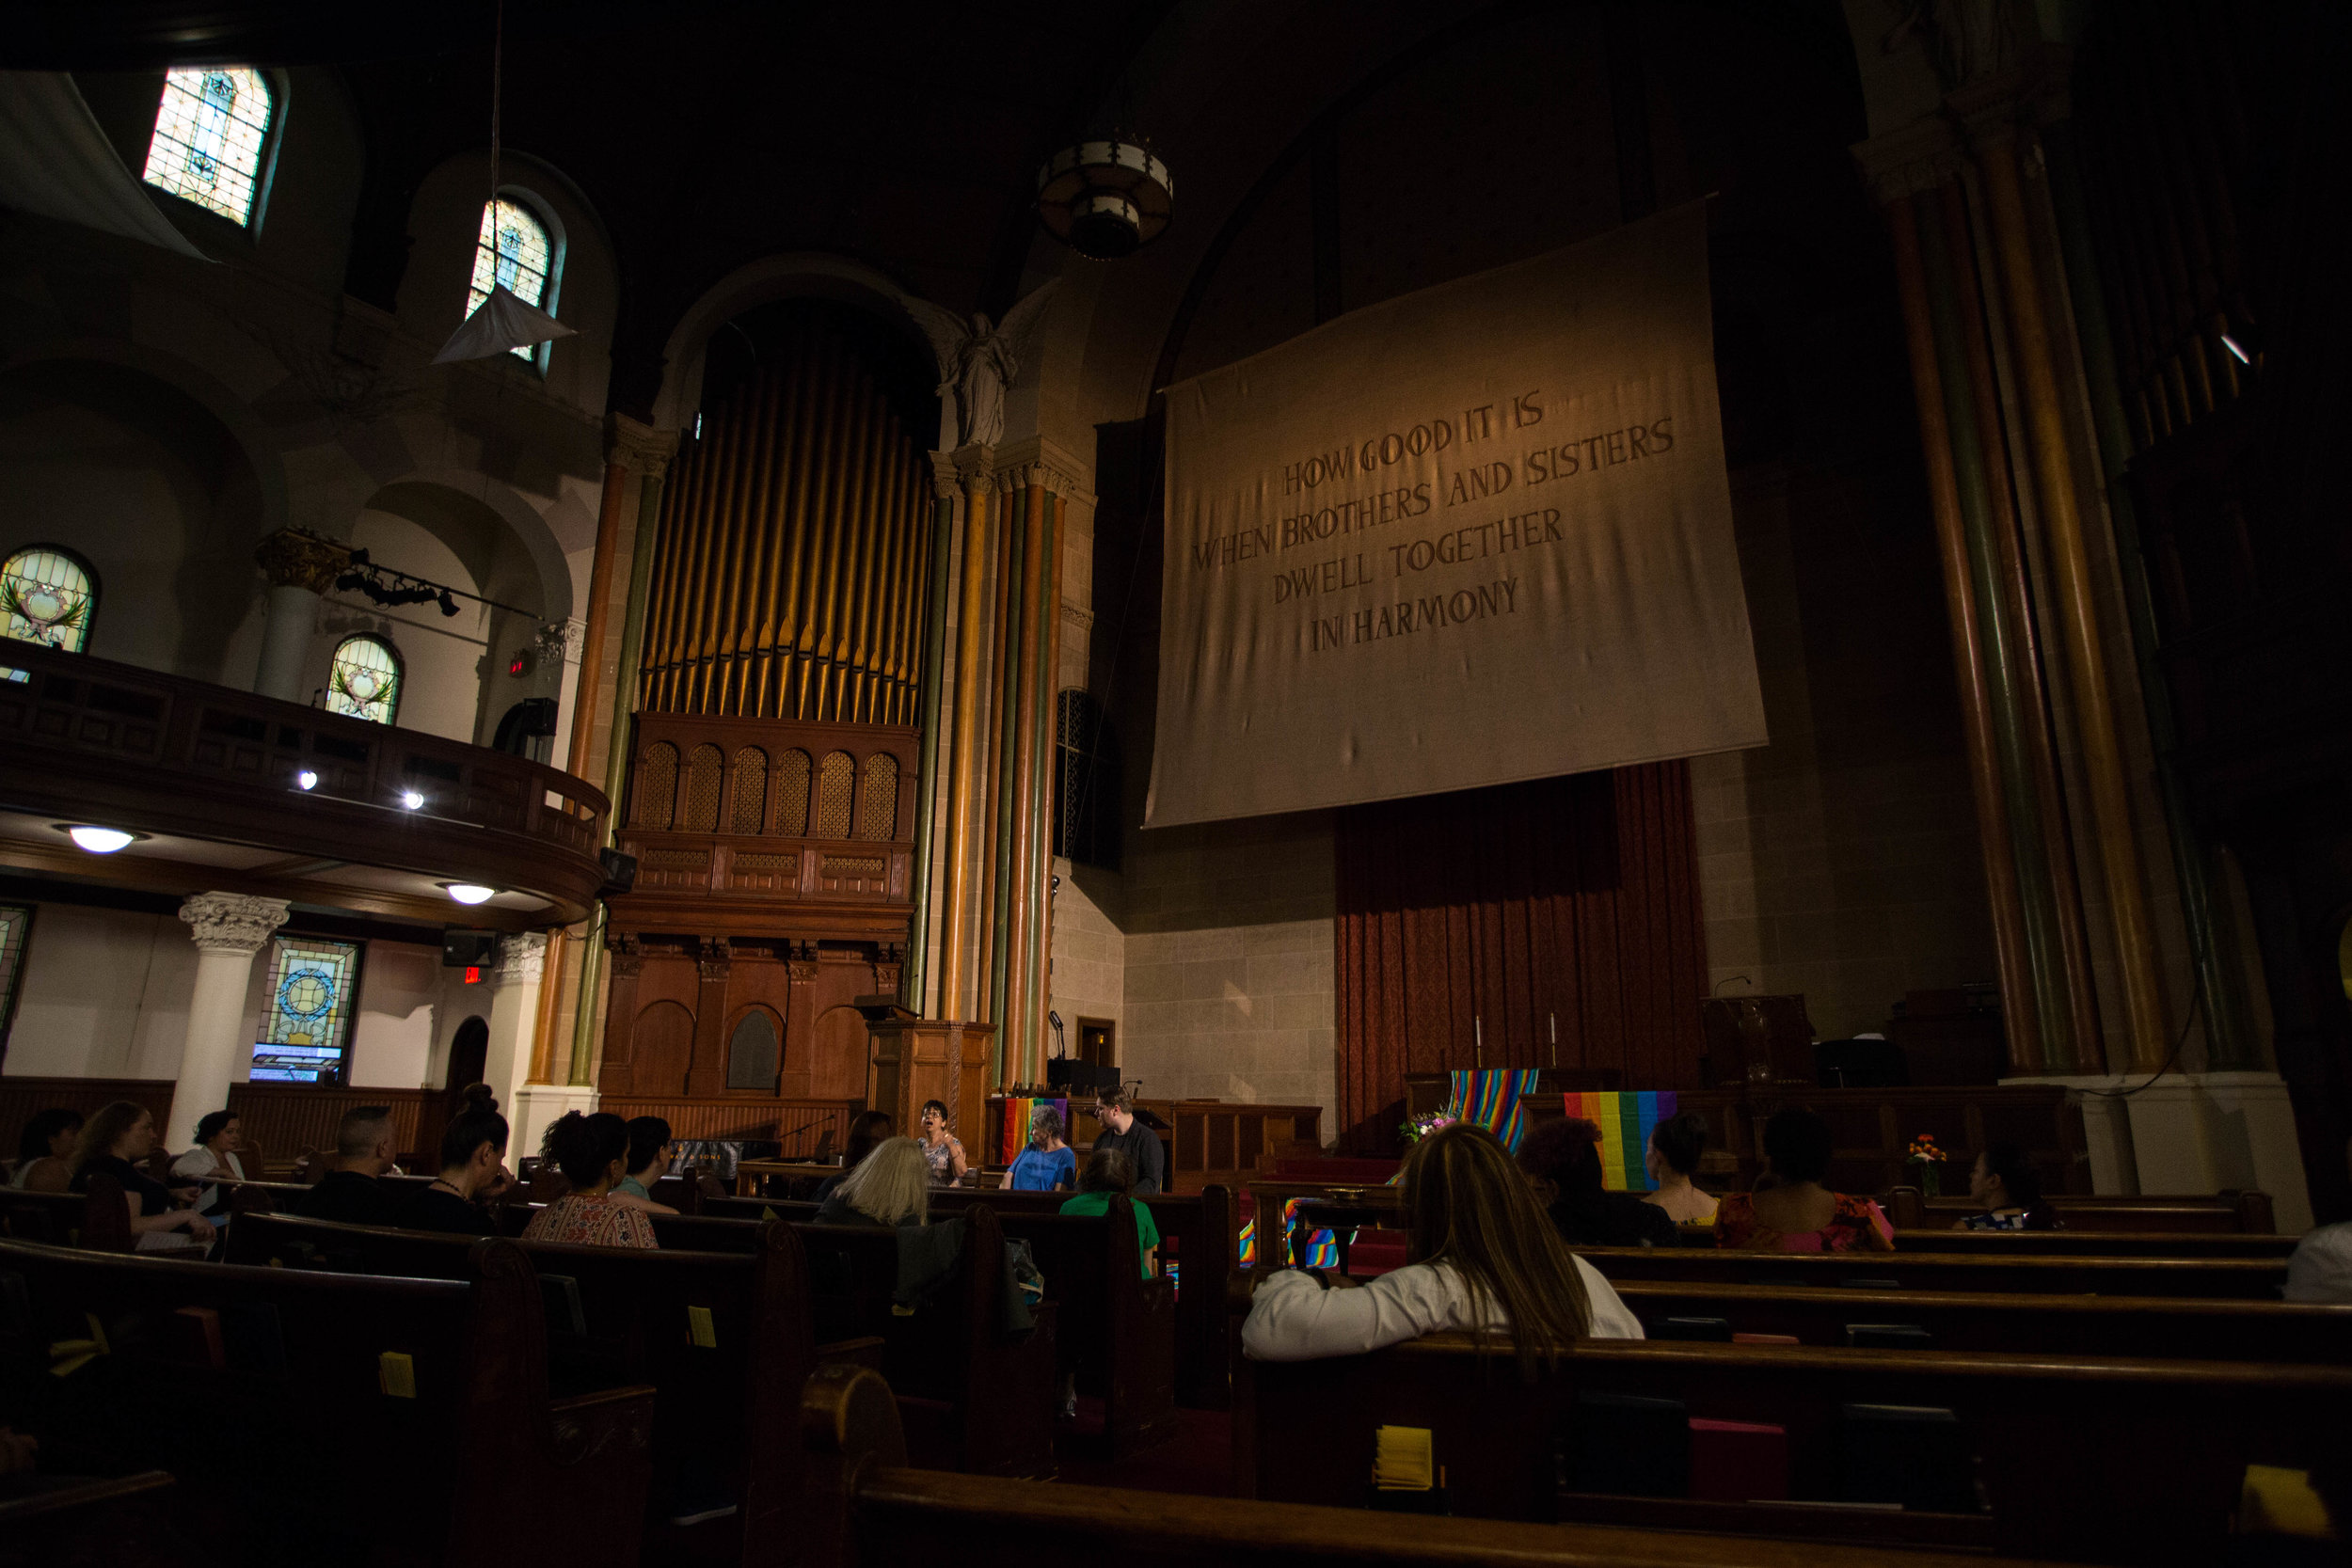 The Spiritualist Church of New York City holds bi-monthly services at St. Paul & St. Andrew Methodist Church. Photo by Wesley Parnell.